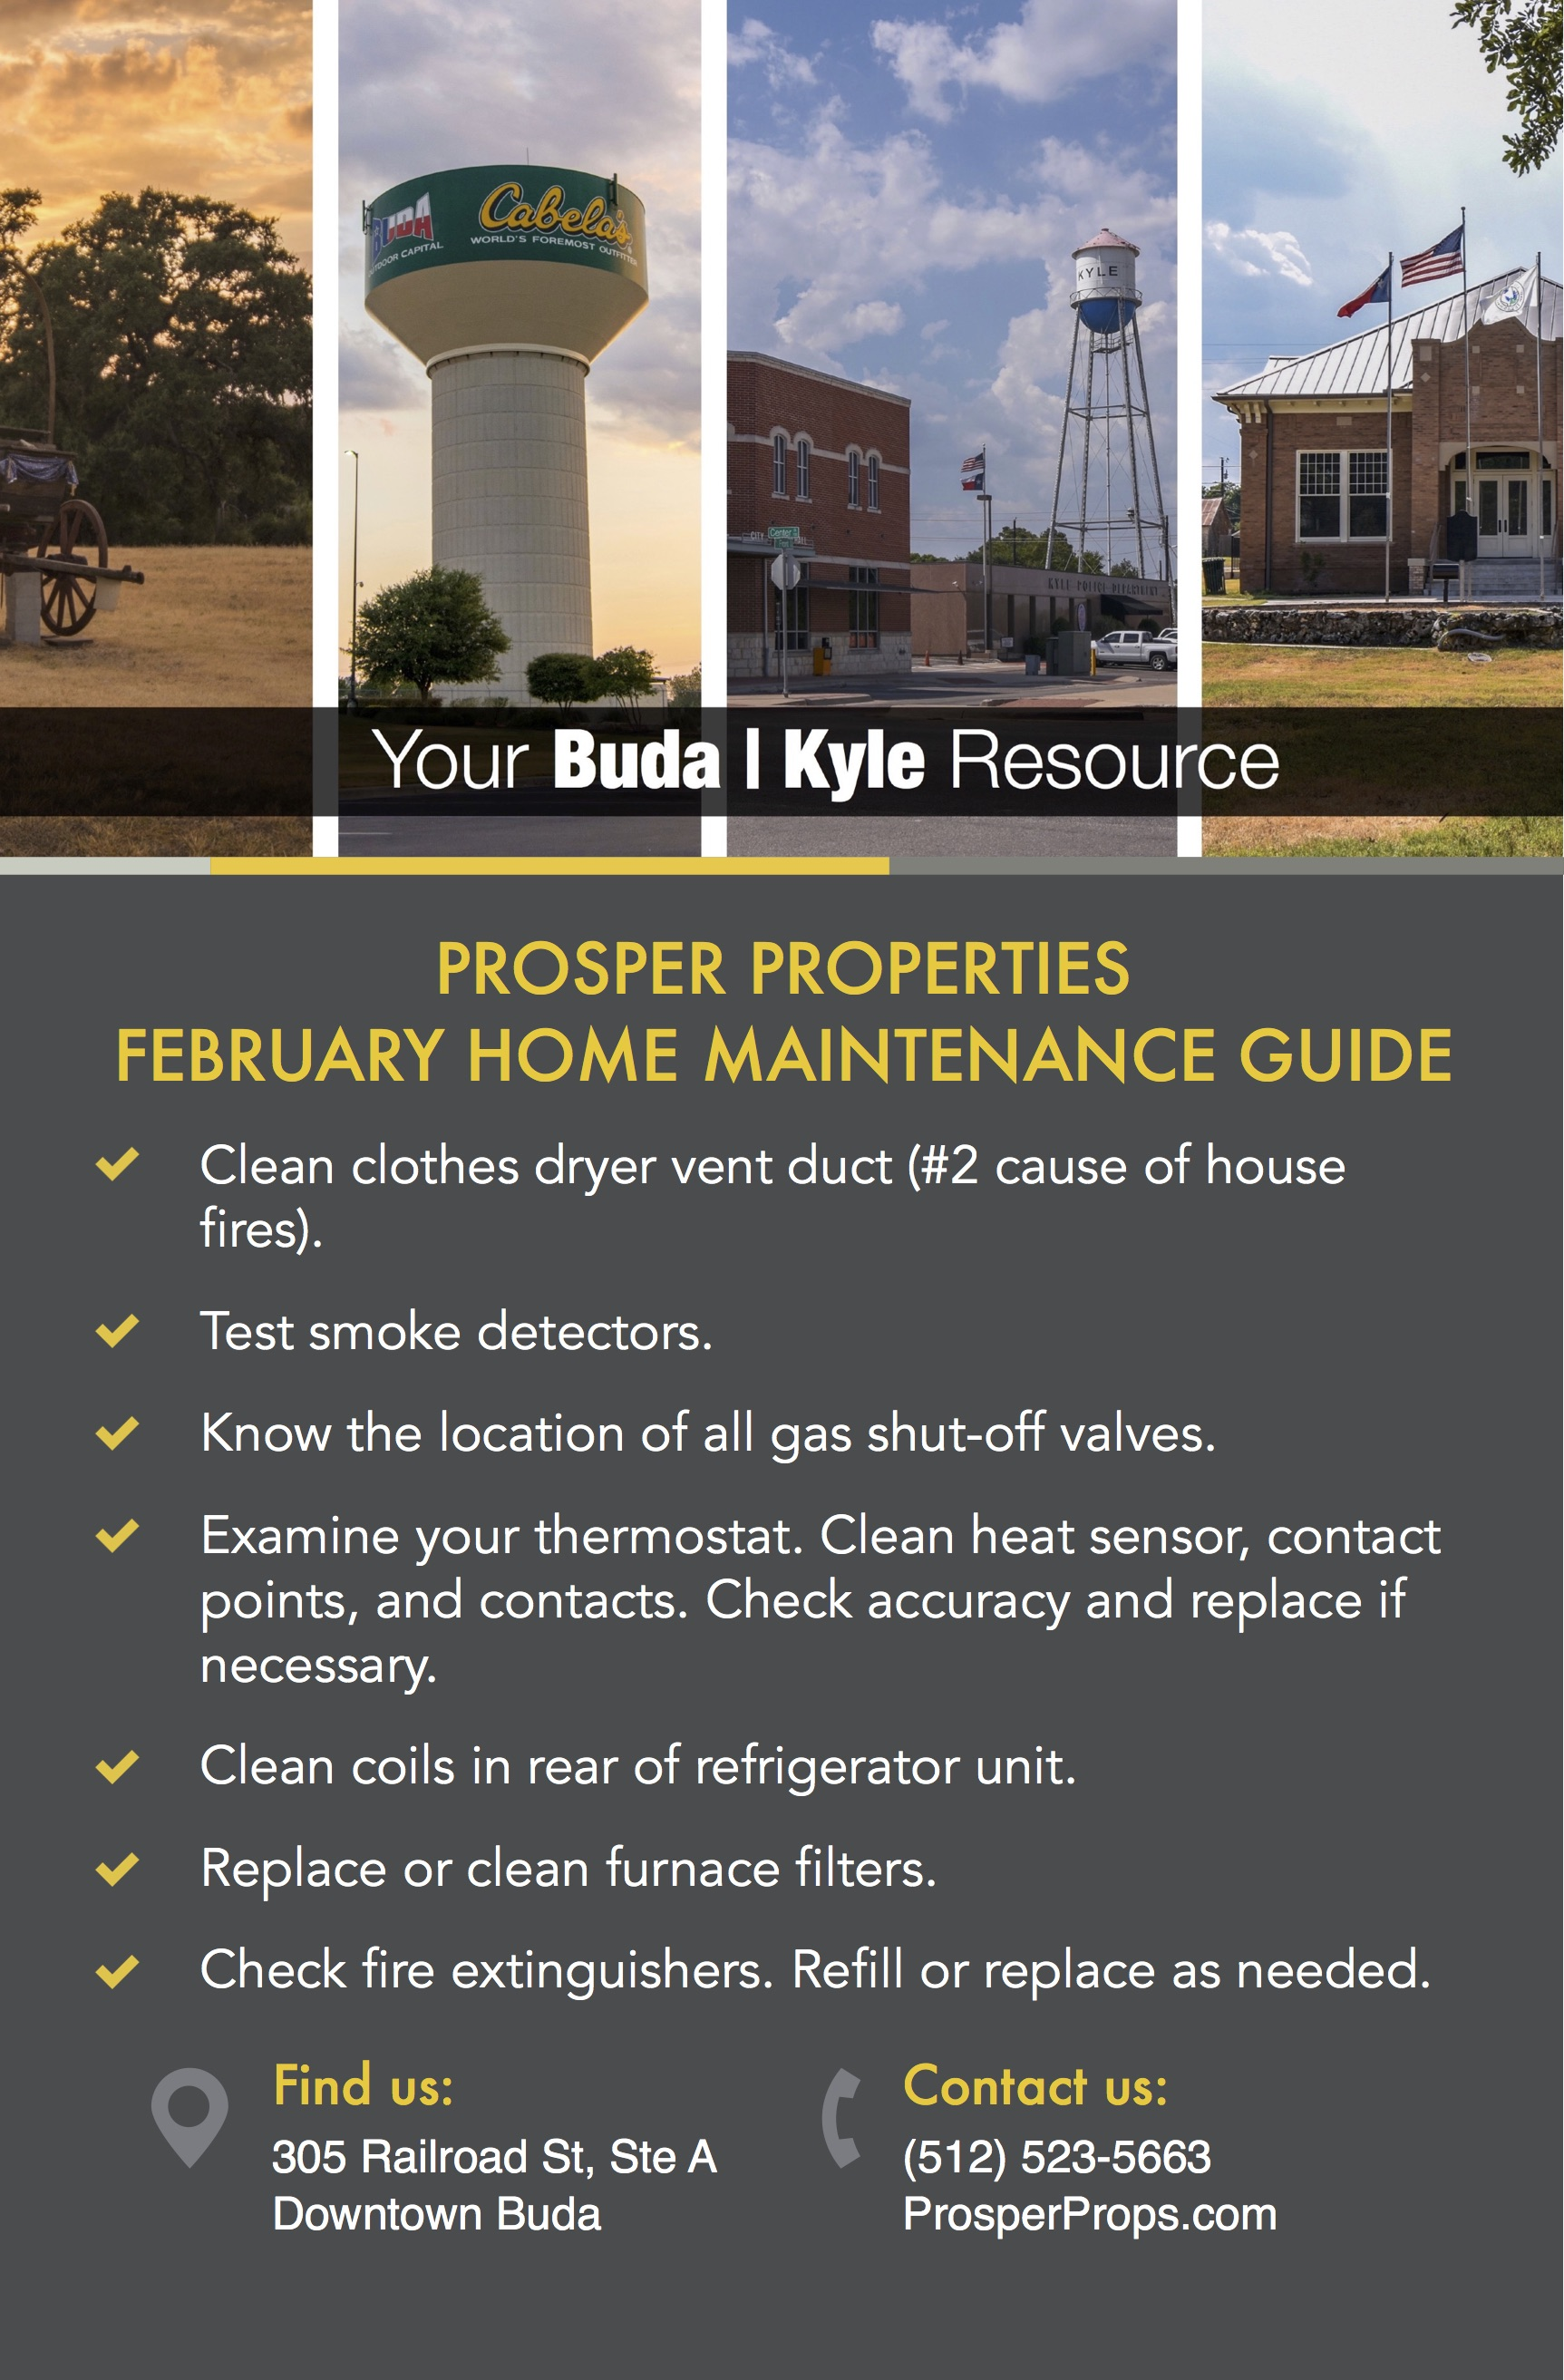 February Home Maintenance Guide